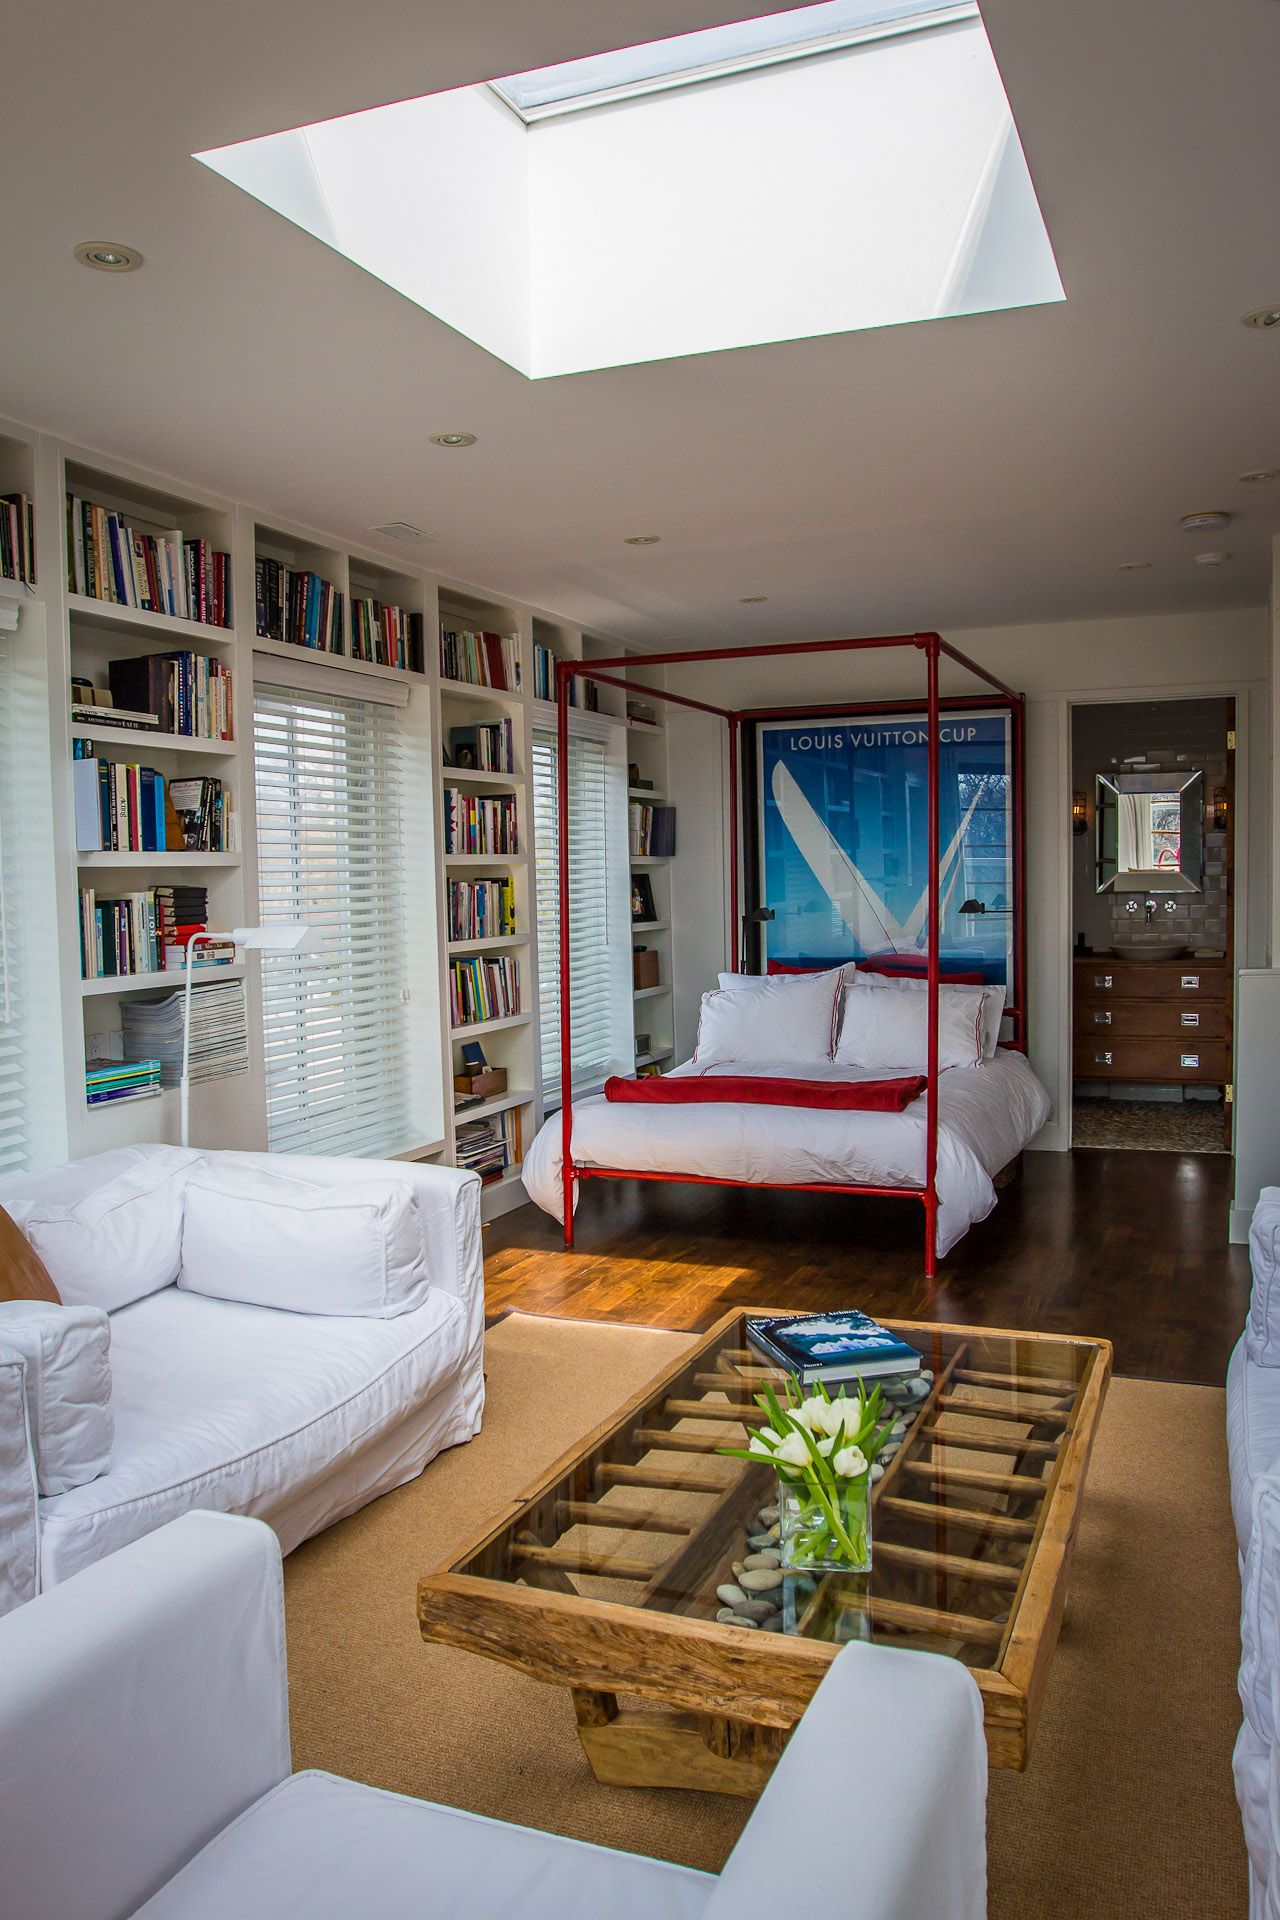 Love The Natural Light And Library Feel Of This Bedroom